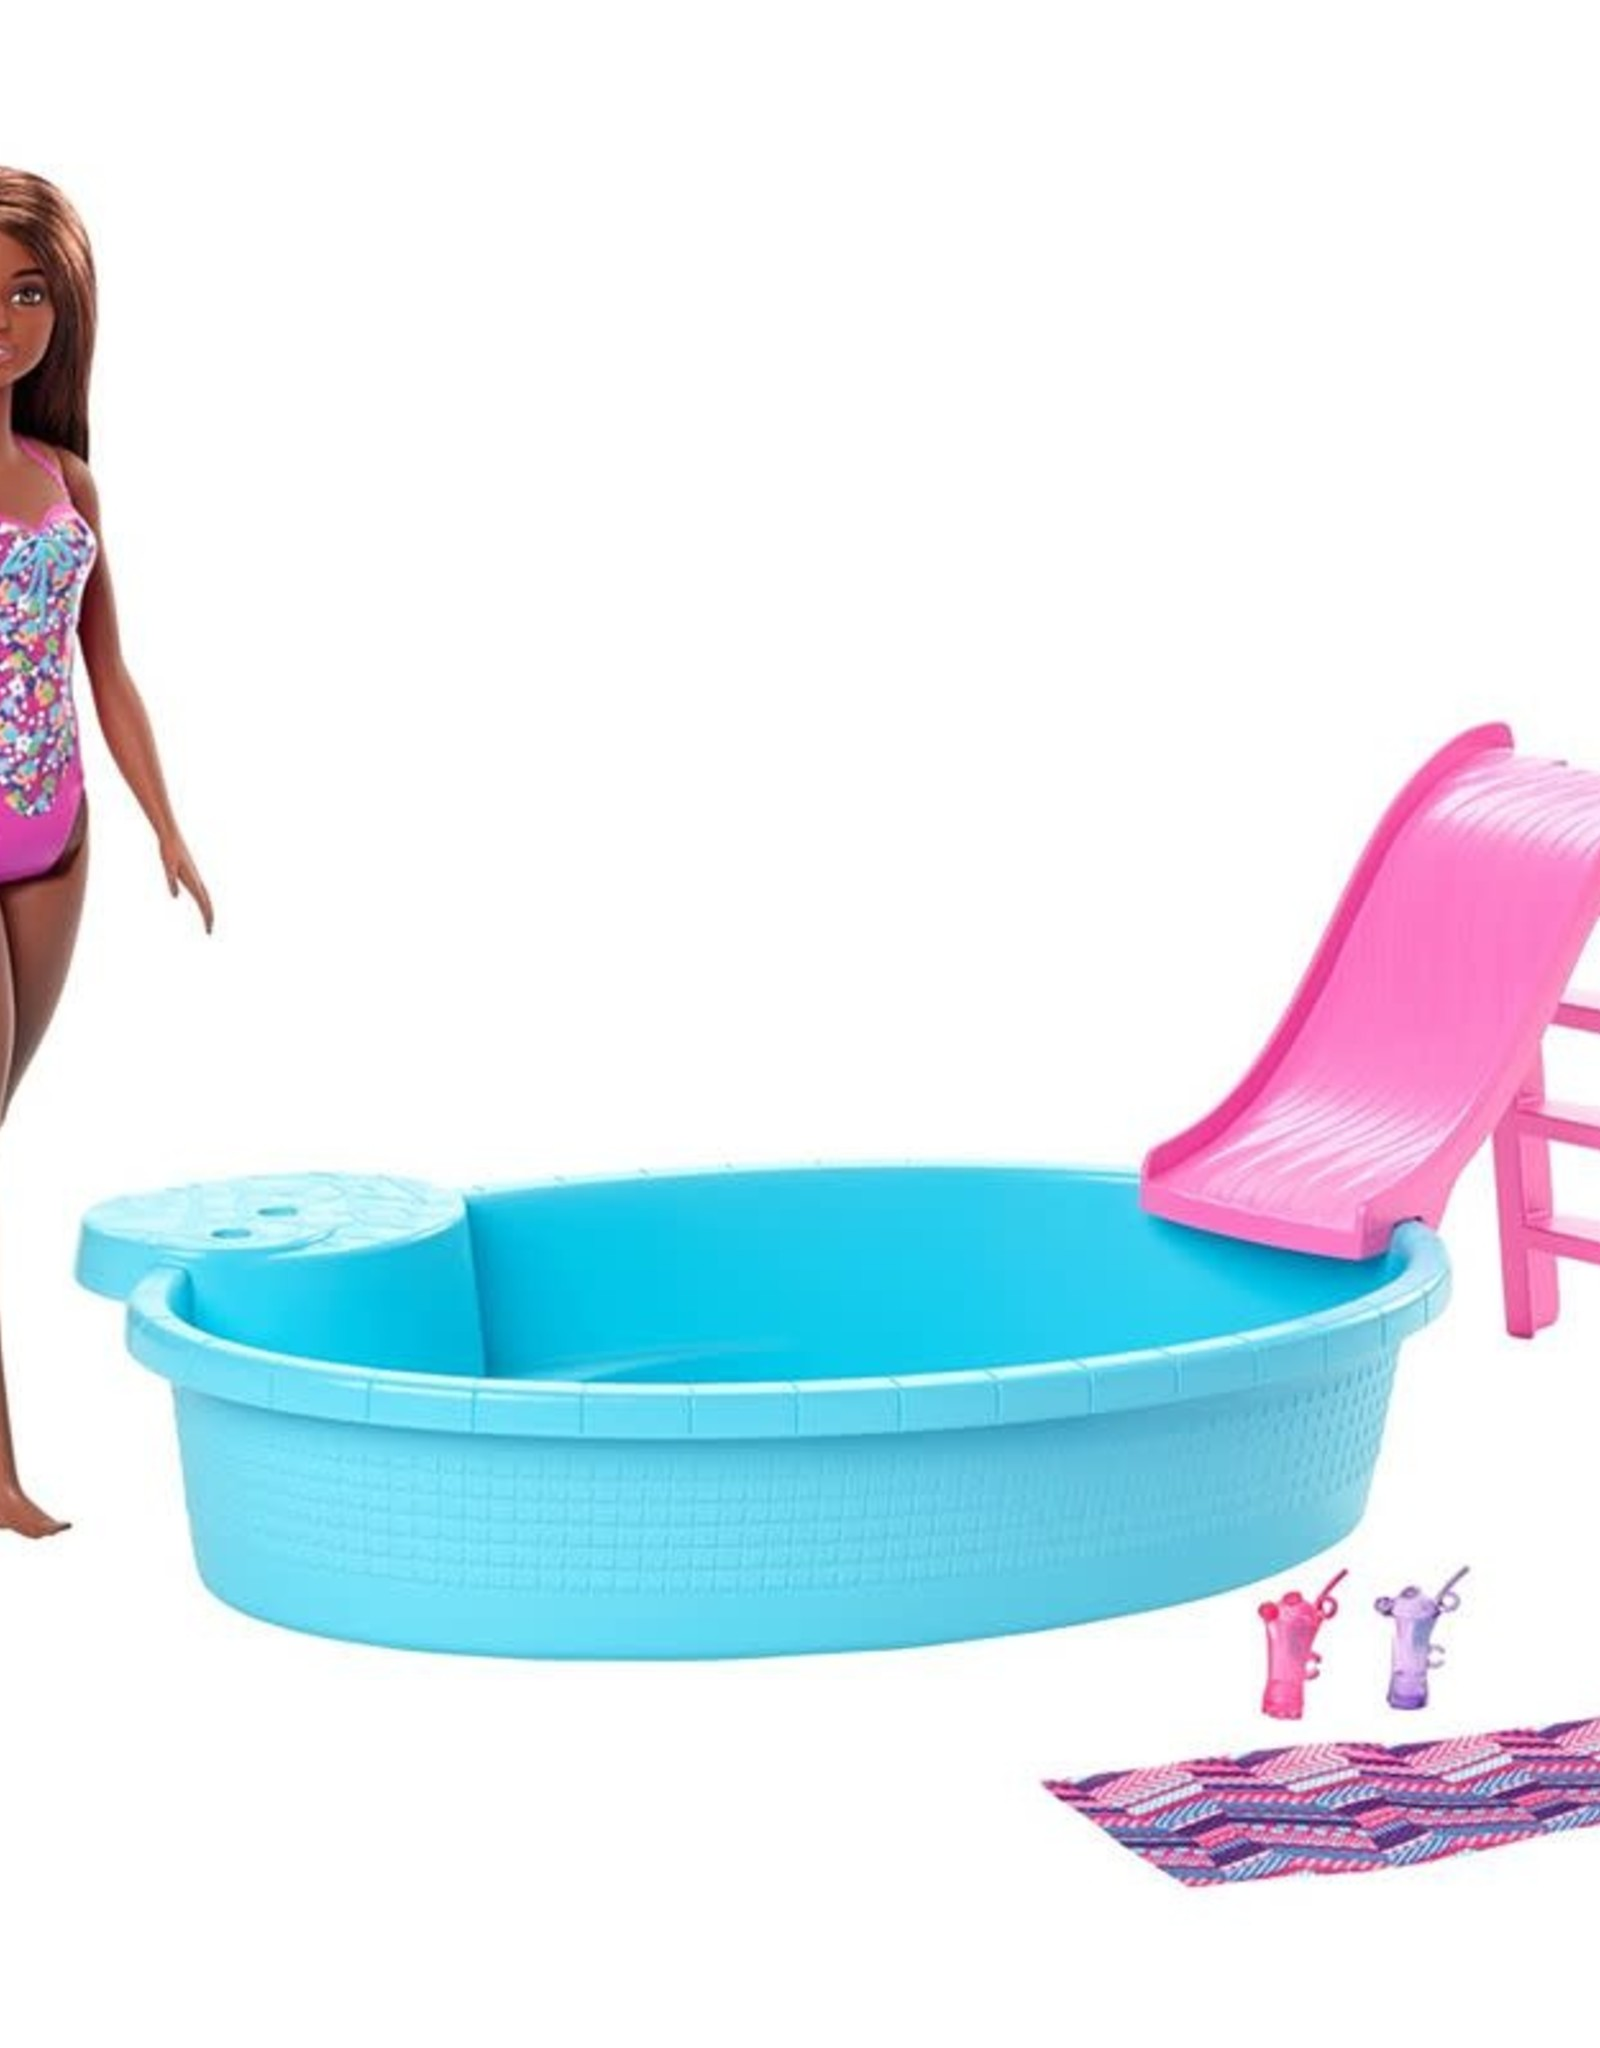 Mattel Barbie Doll and Playset